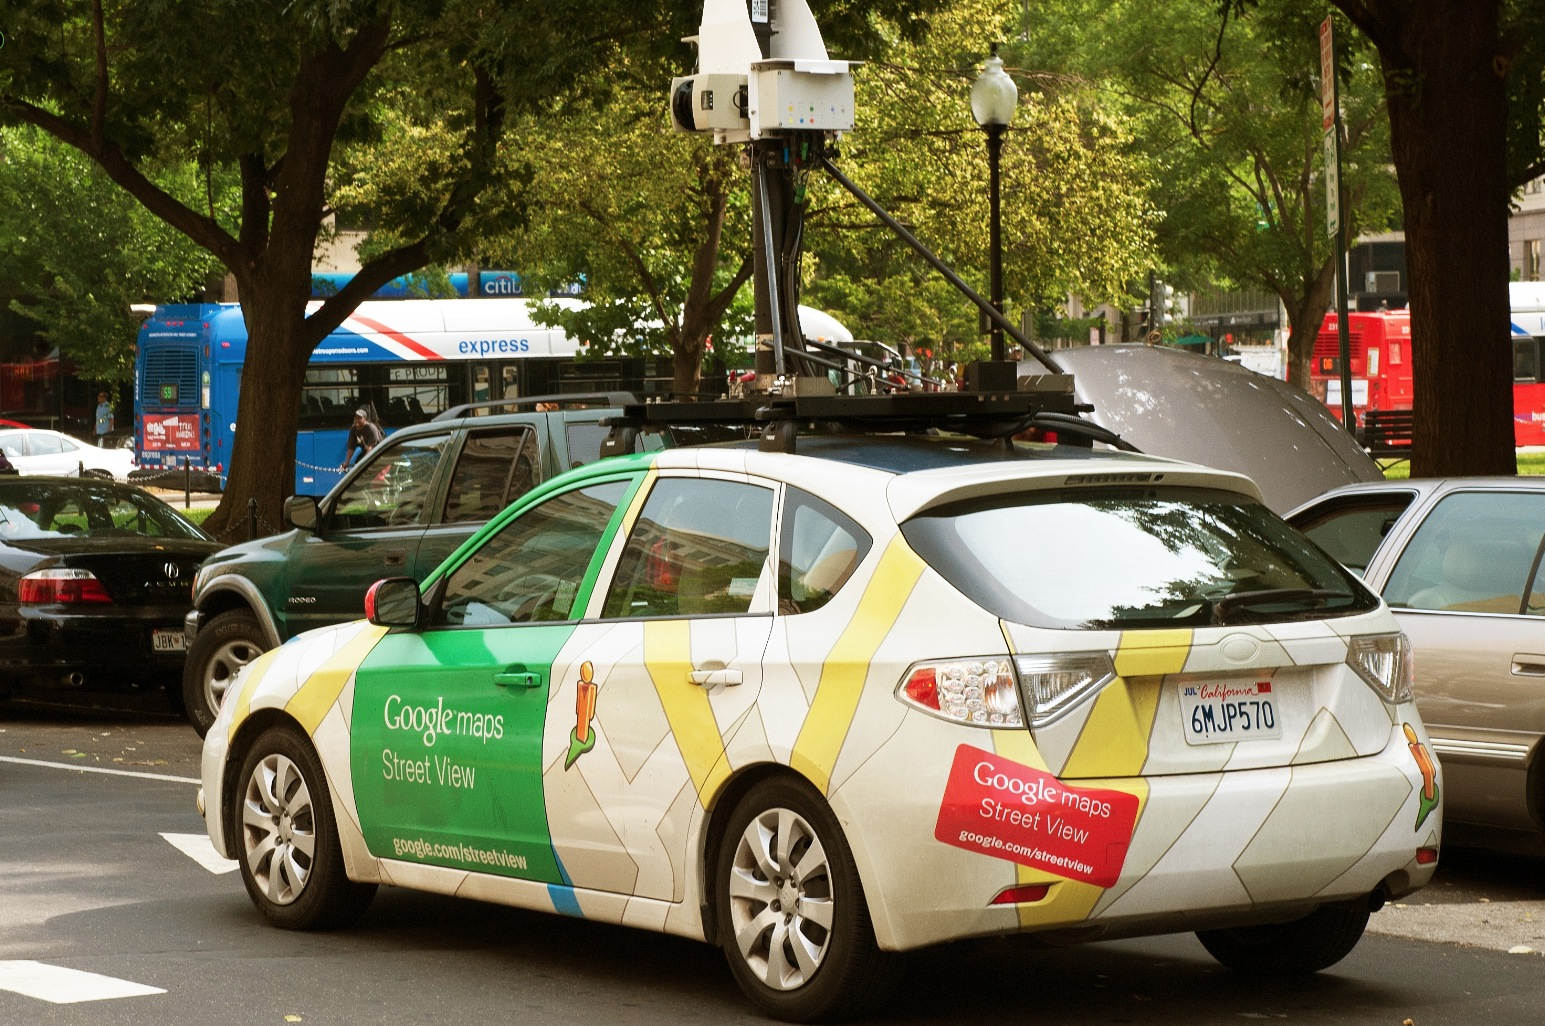 Google's biggest Street View update ever updates 250k miles of road worldwide and doubles collections ...